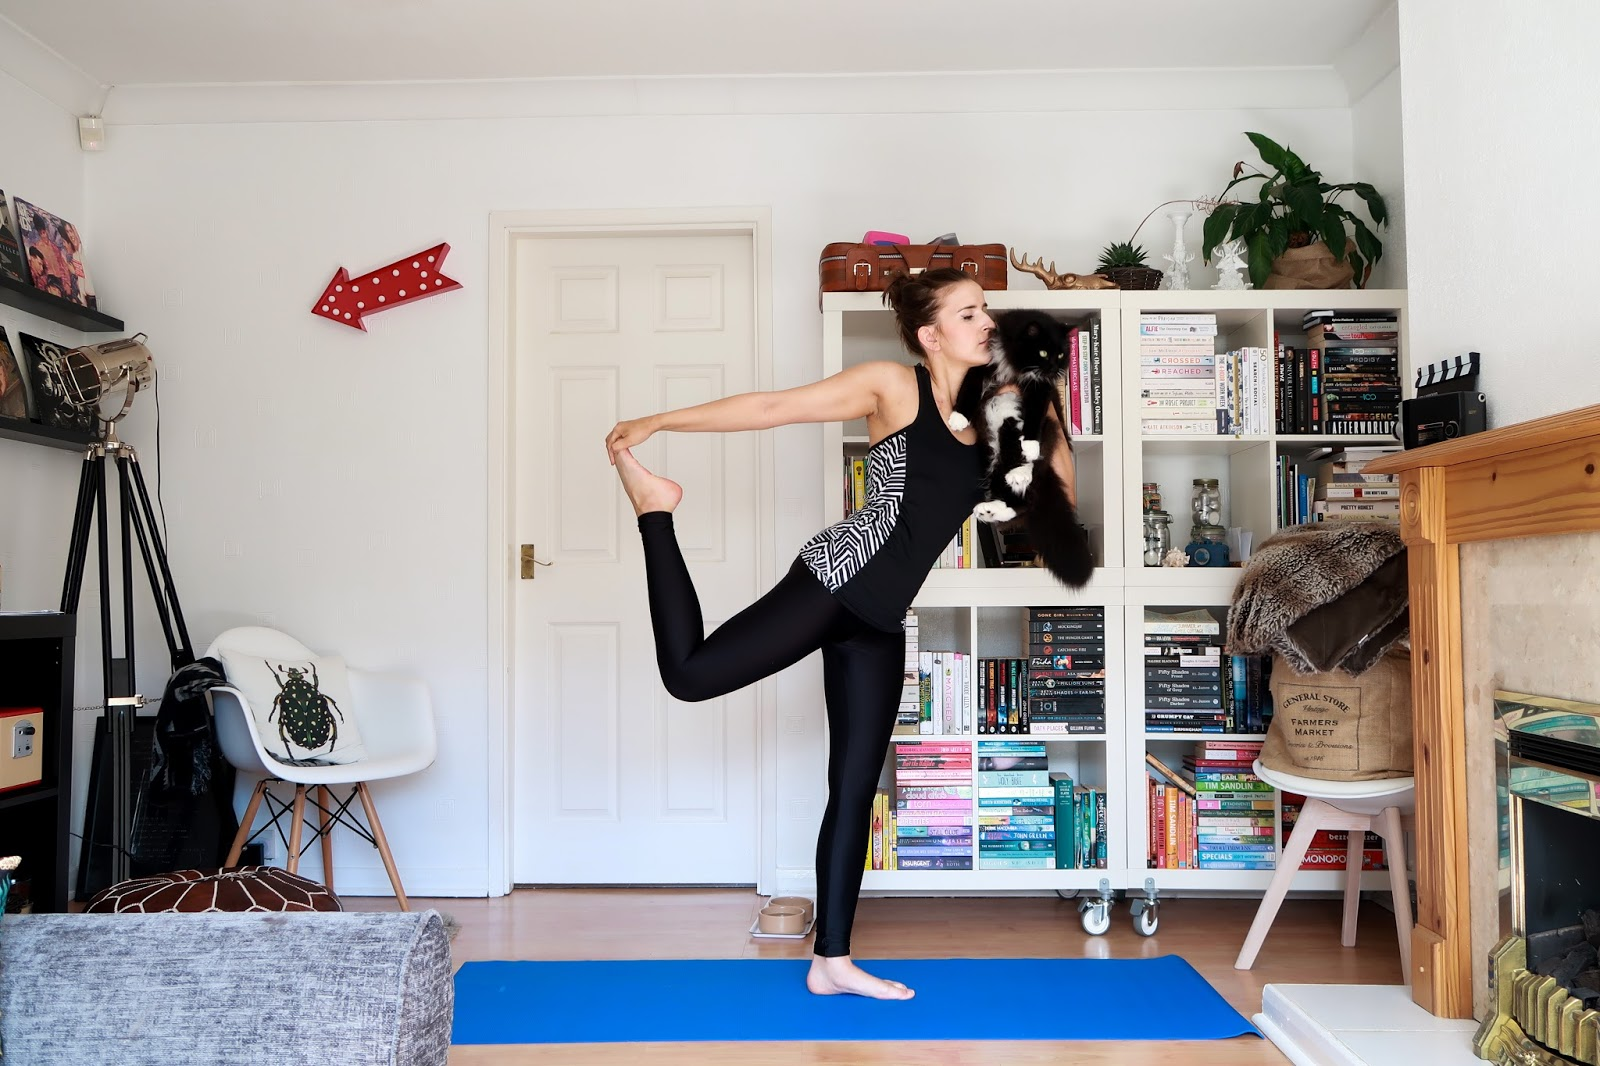 Yoga journal: How yoga changed the way I am